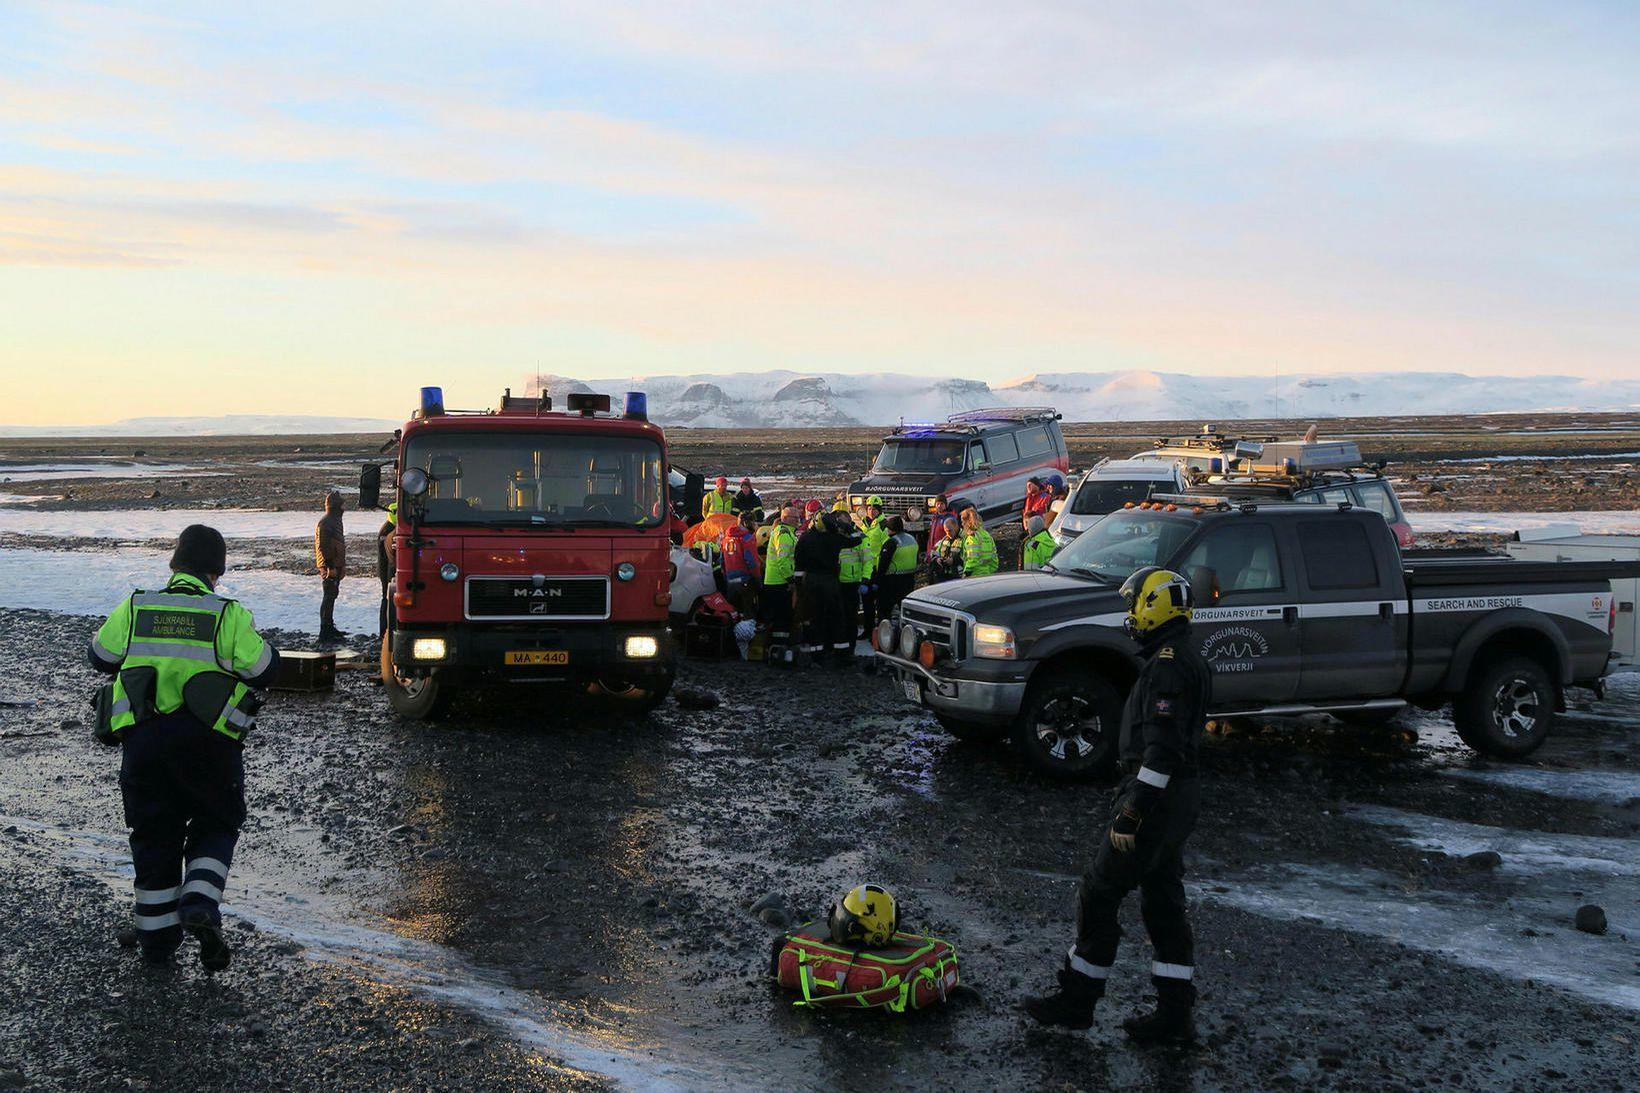 From the site of the accident in South Iceland.